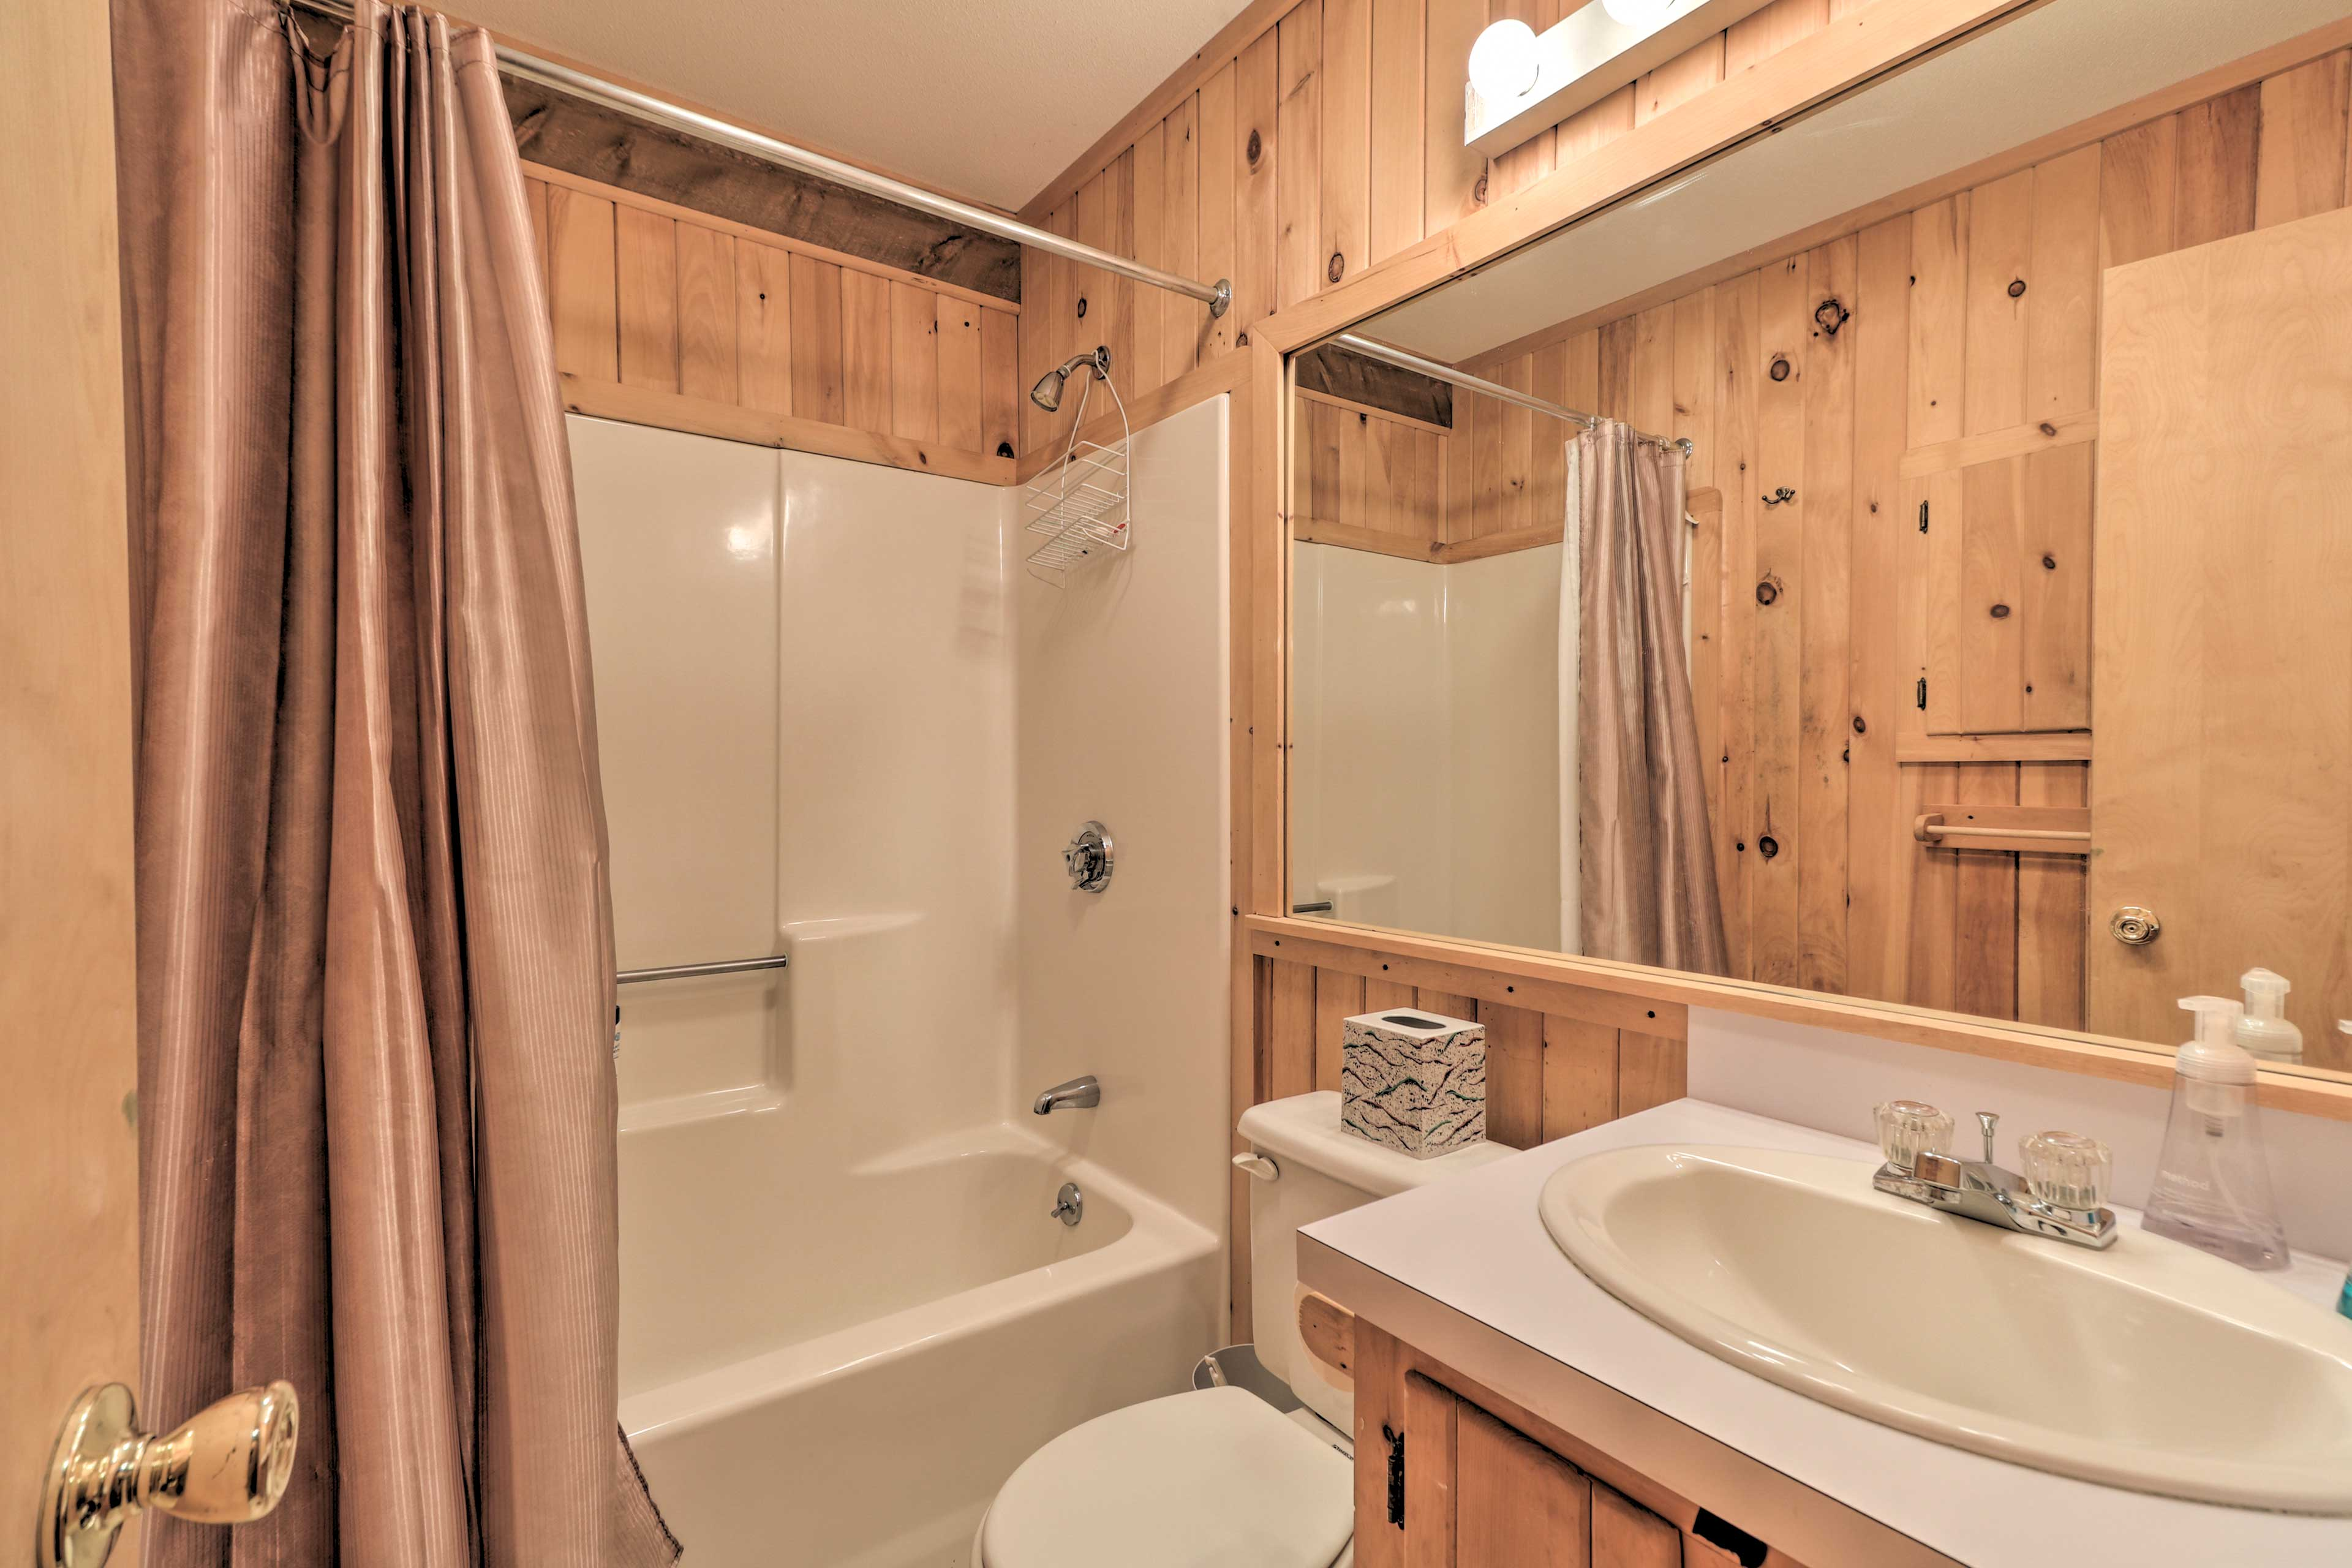 The final bathroom is equipped with a shower/tub combo.